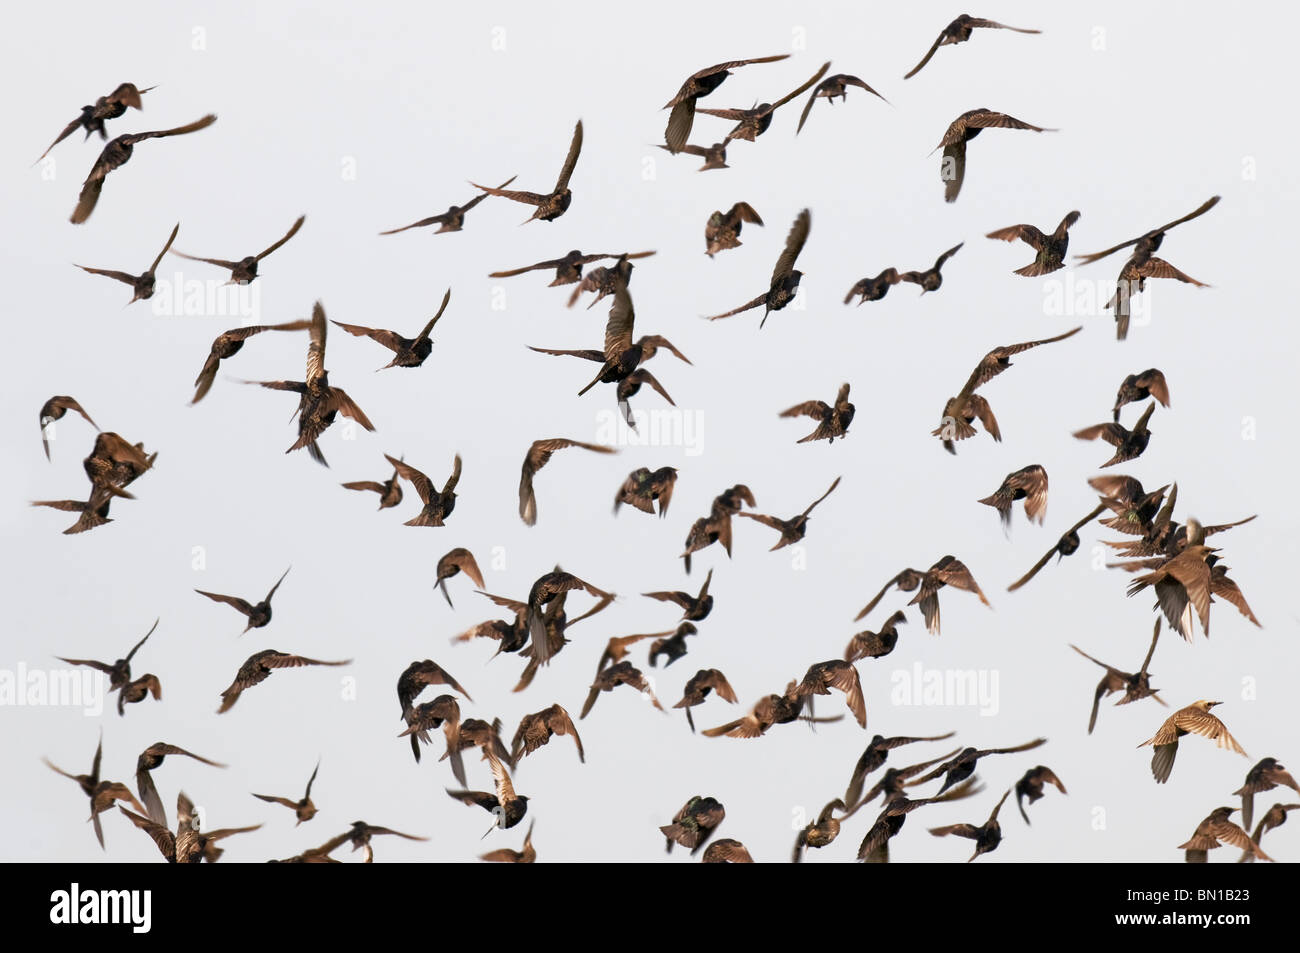 A flock of starlings. - Stock Image